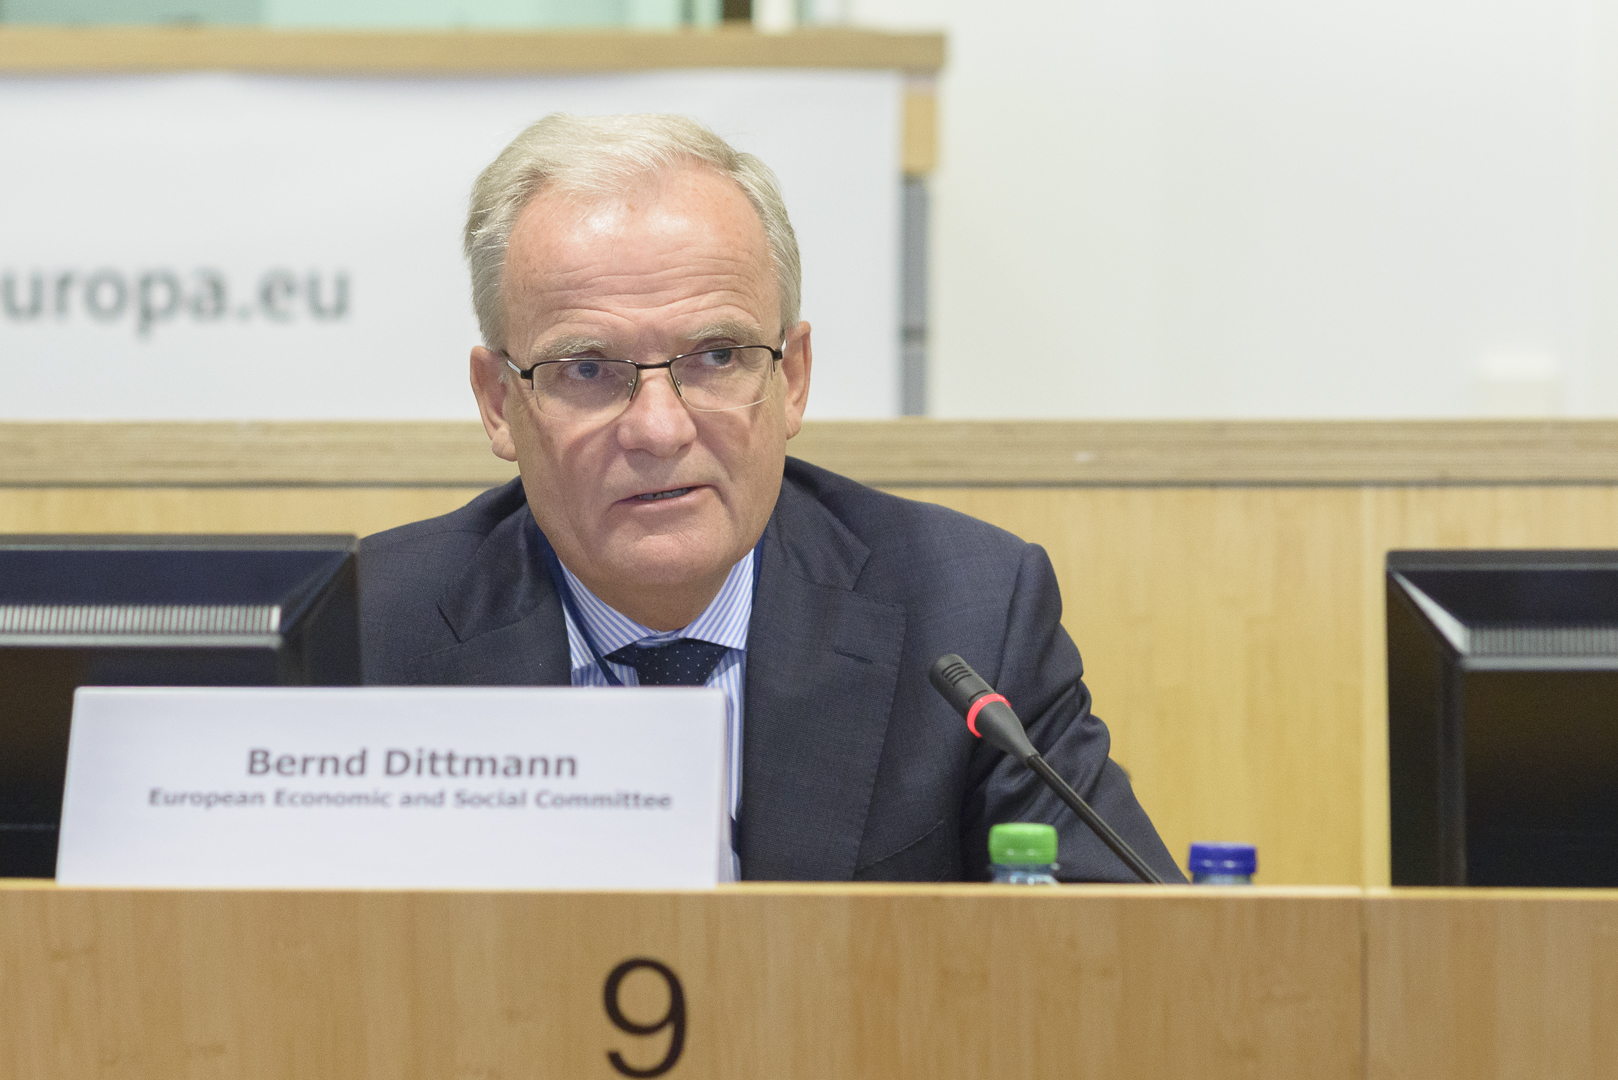 PUTTING EU LAW INTO PRACTICE CONFERENCE - Bernd Dittmann, Member, European Economic and Social Committee